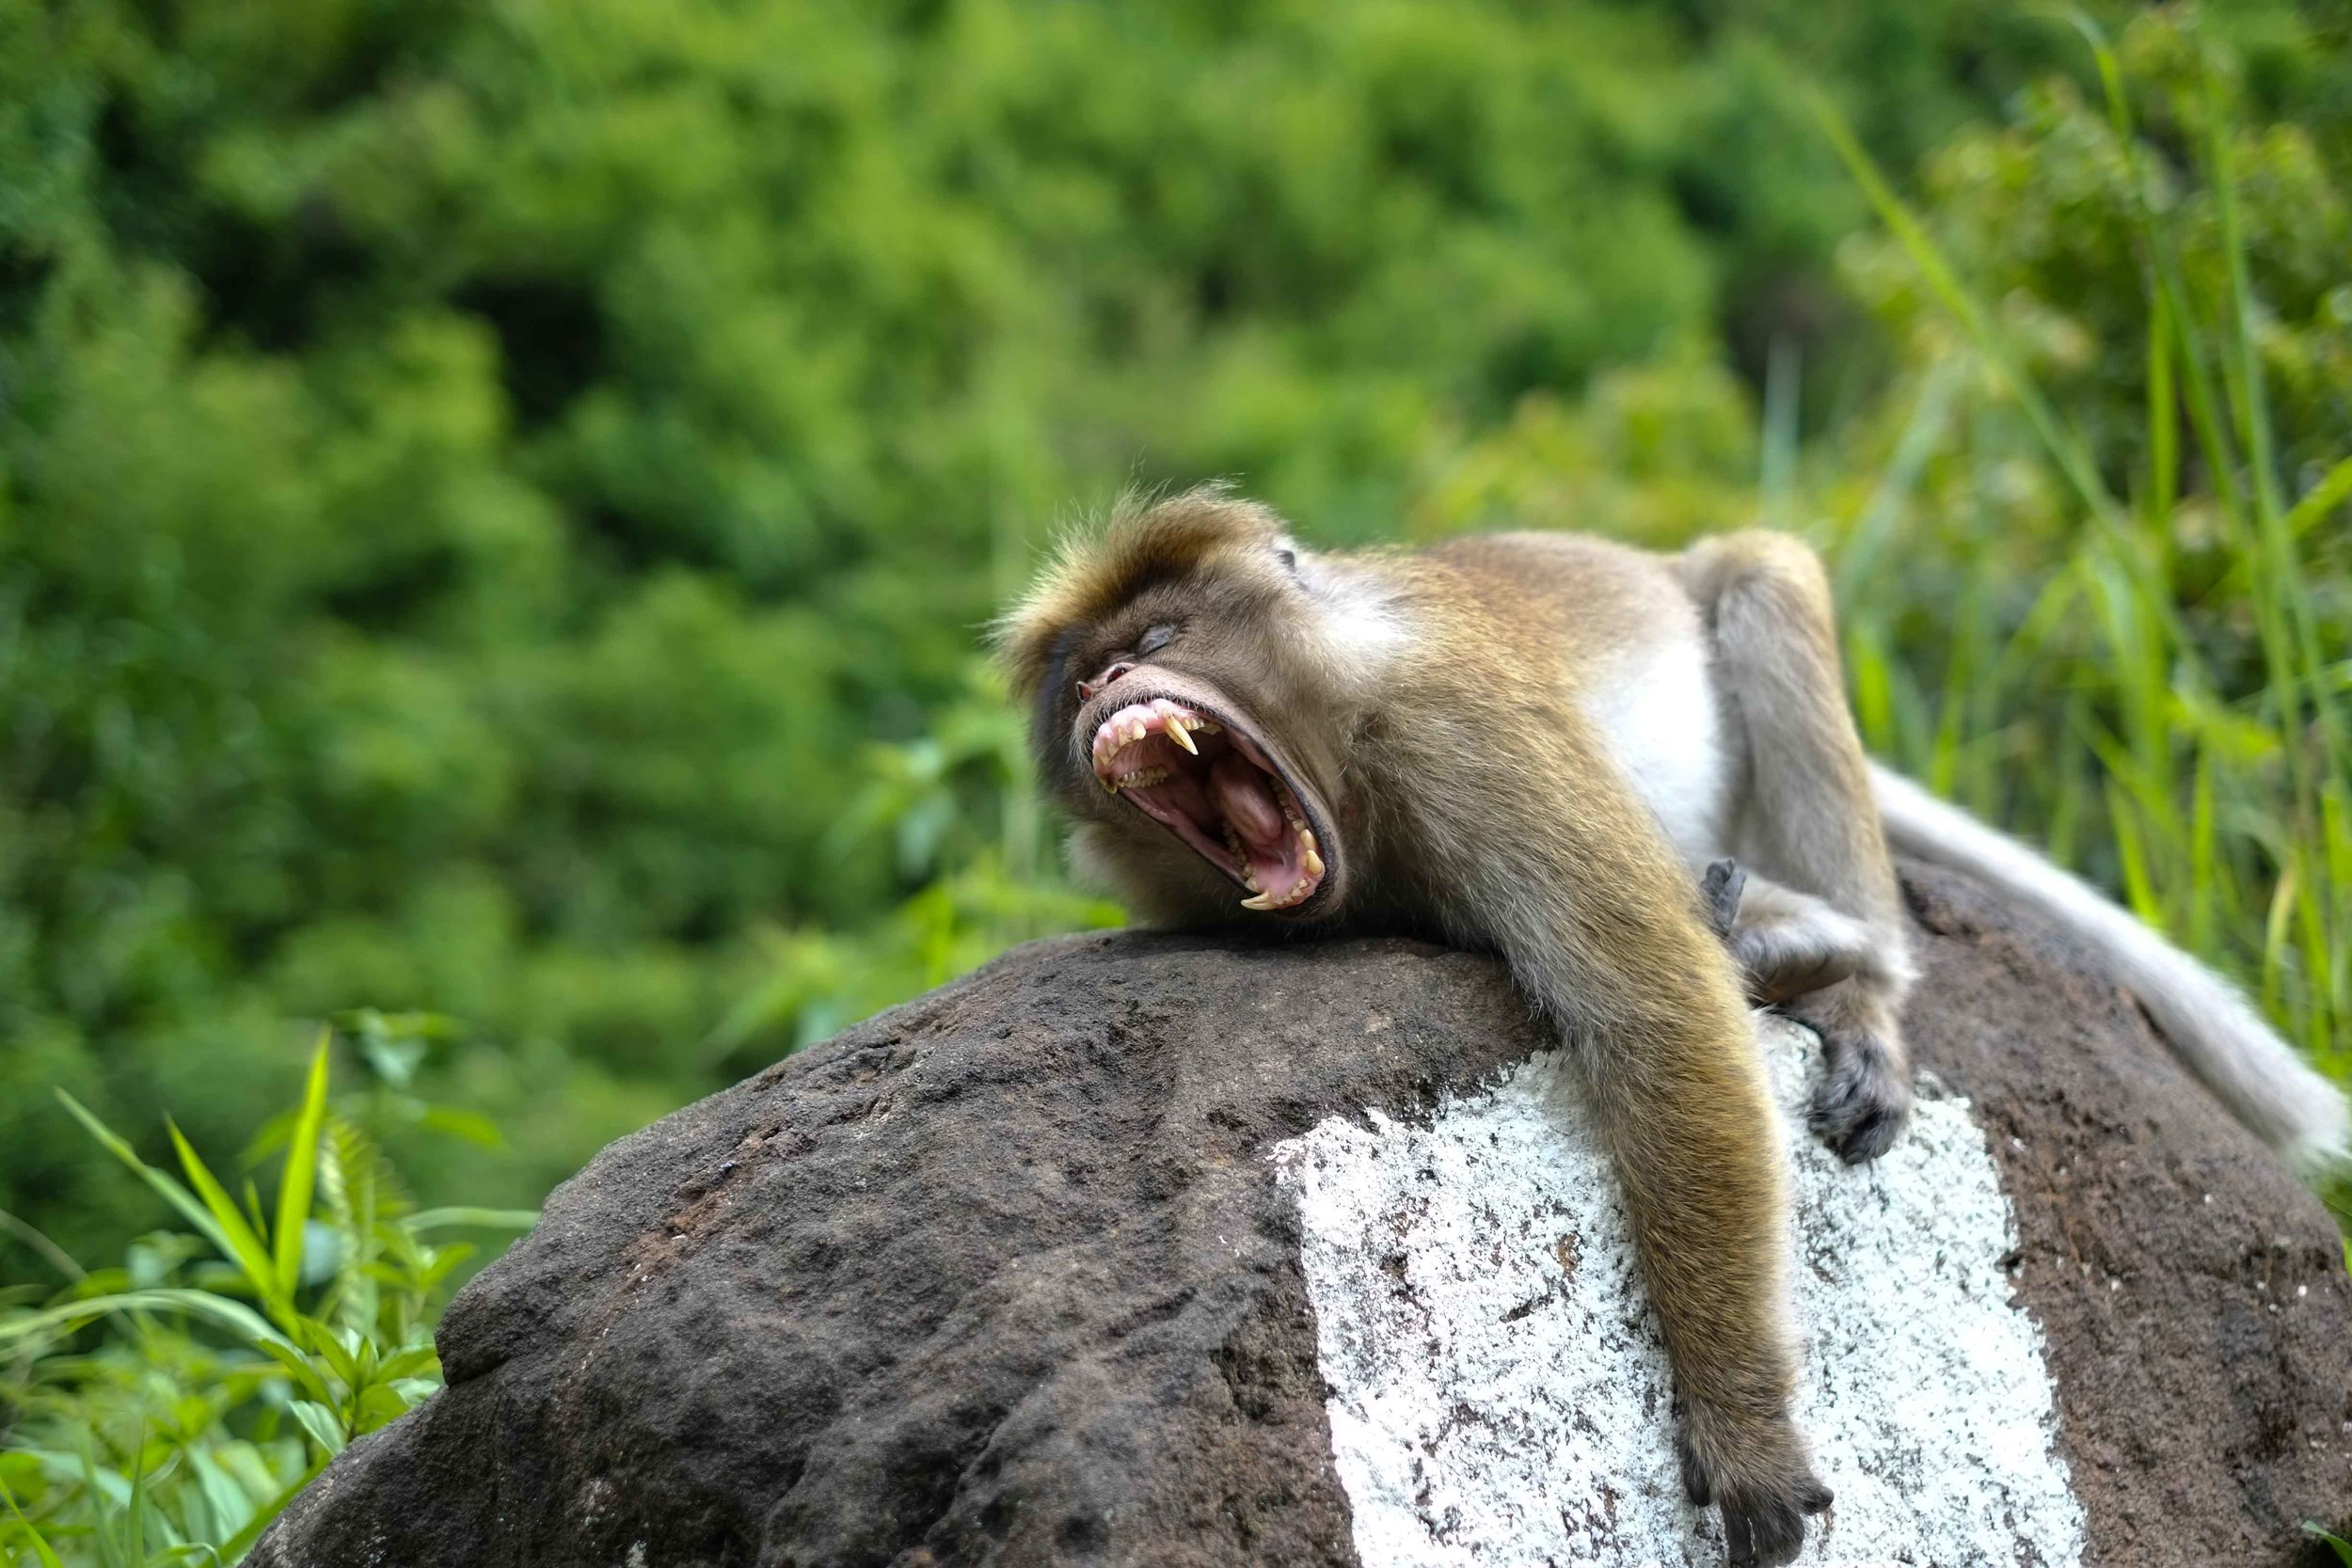 Nap time for a monkey by the side of the road near Delhouse.